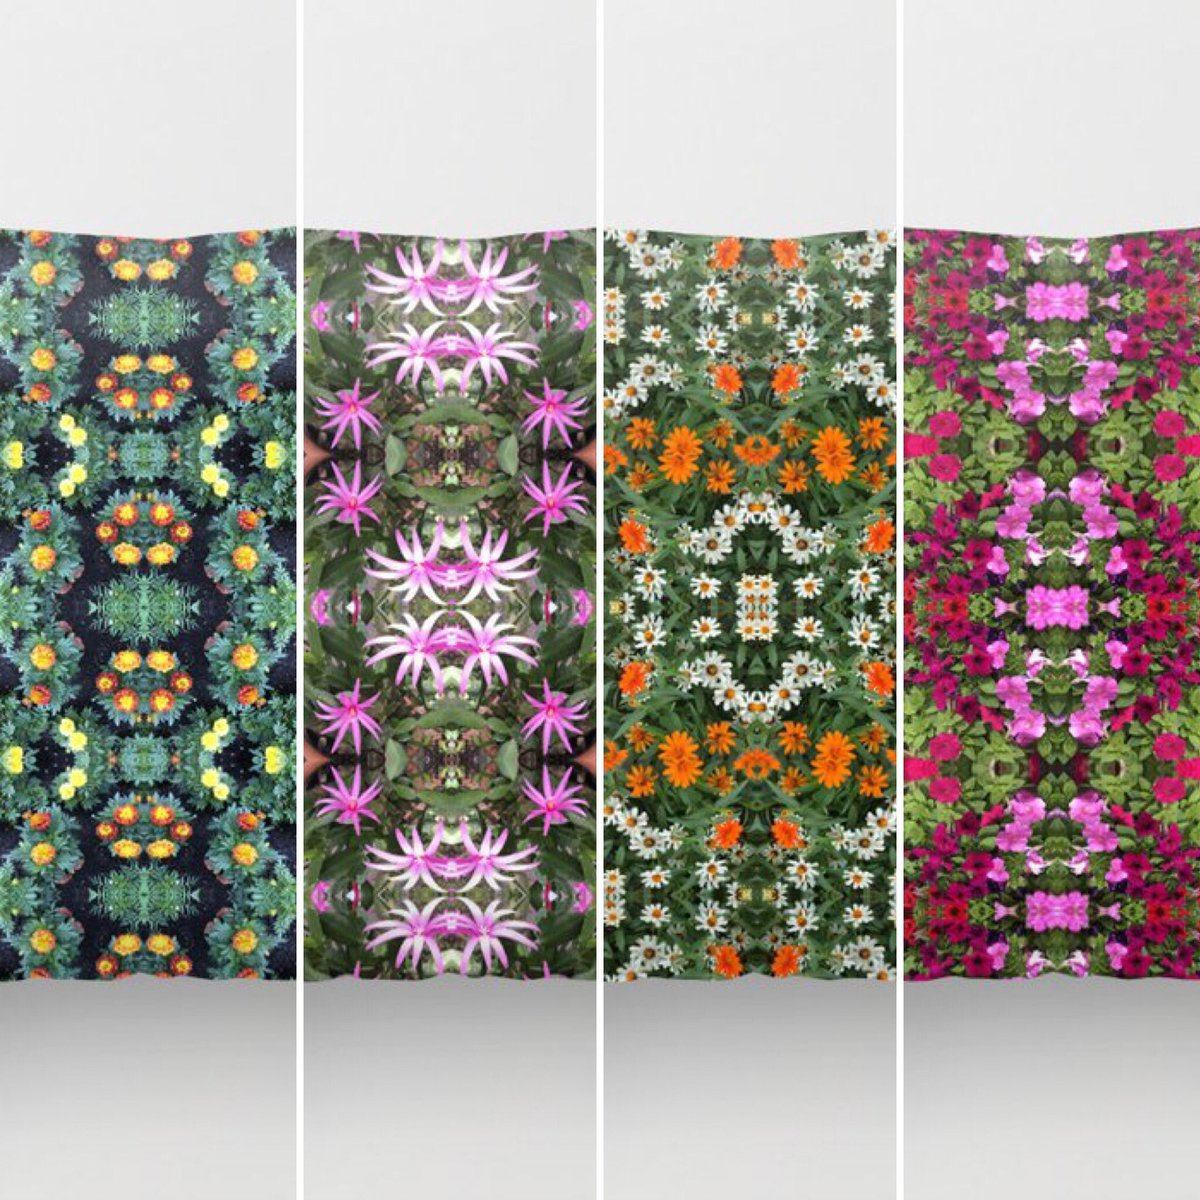 Divine Florals Collection  🌸🌿🌺🌿🌼Floral tapestries of bright & bold flower blooms.  https://t.co/jIf0Jrjvha #colorfulhome #homedecor #Christmas2020 #christmasiscoming #surfacedesigner #society6 #BlackFriday2020 #BlackFriday #giftideas #holidayseason #shopsmallbusiness https://t.co/YeFSkMyevL